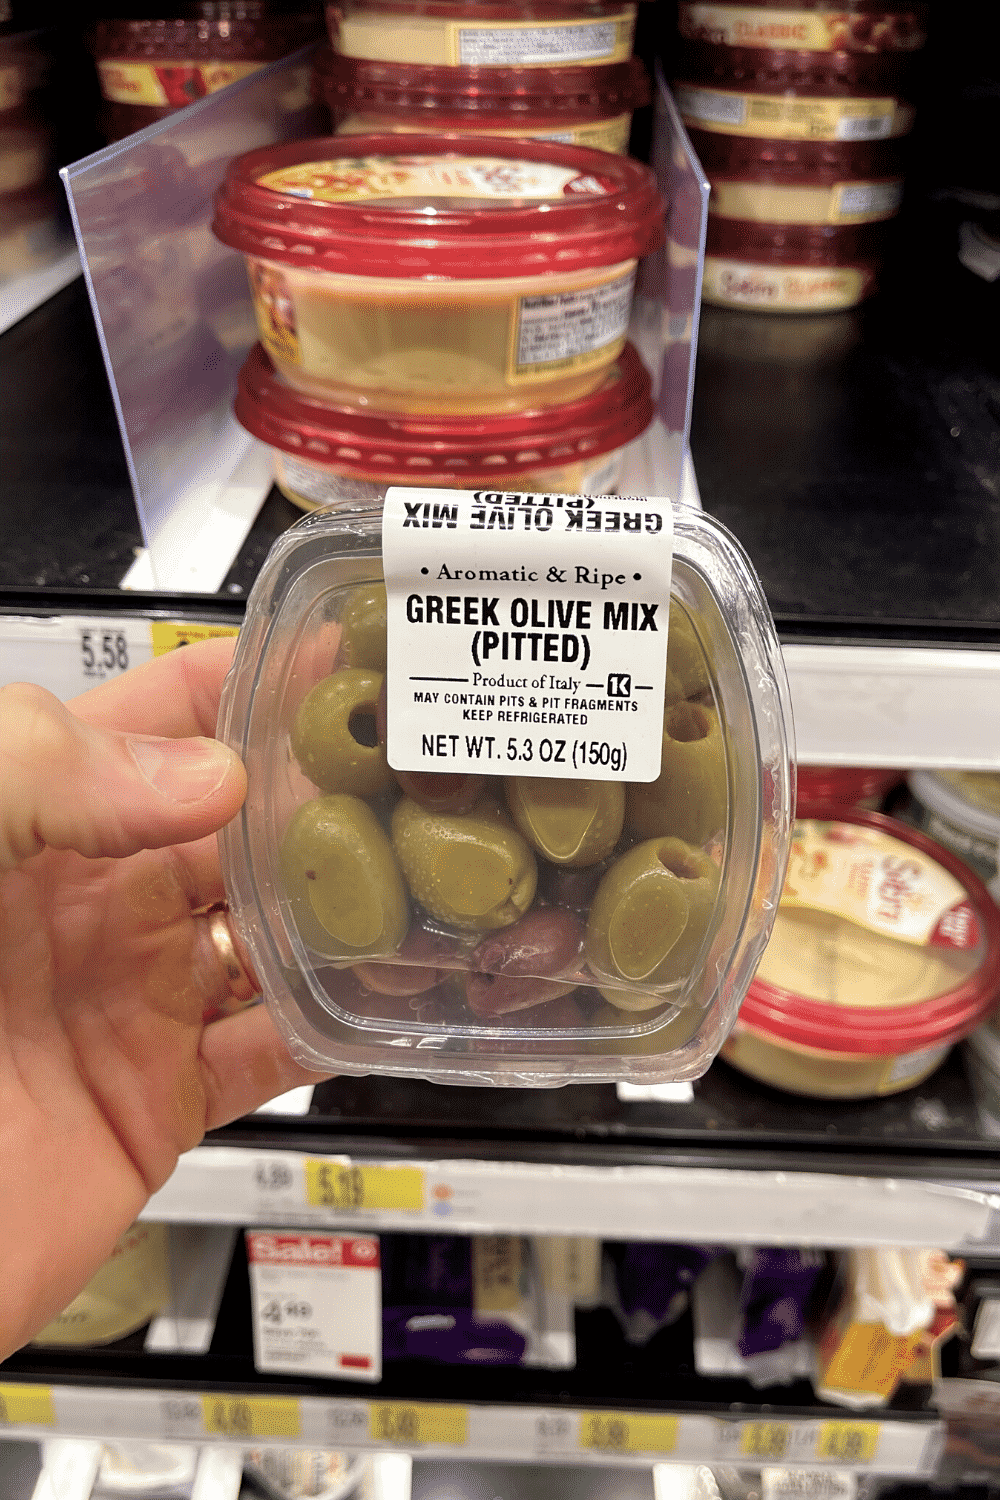 A hand holding a package of Greek olives.